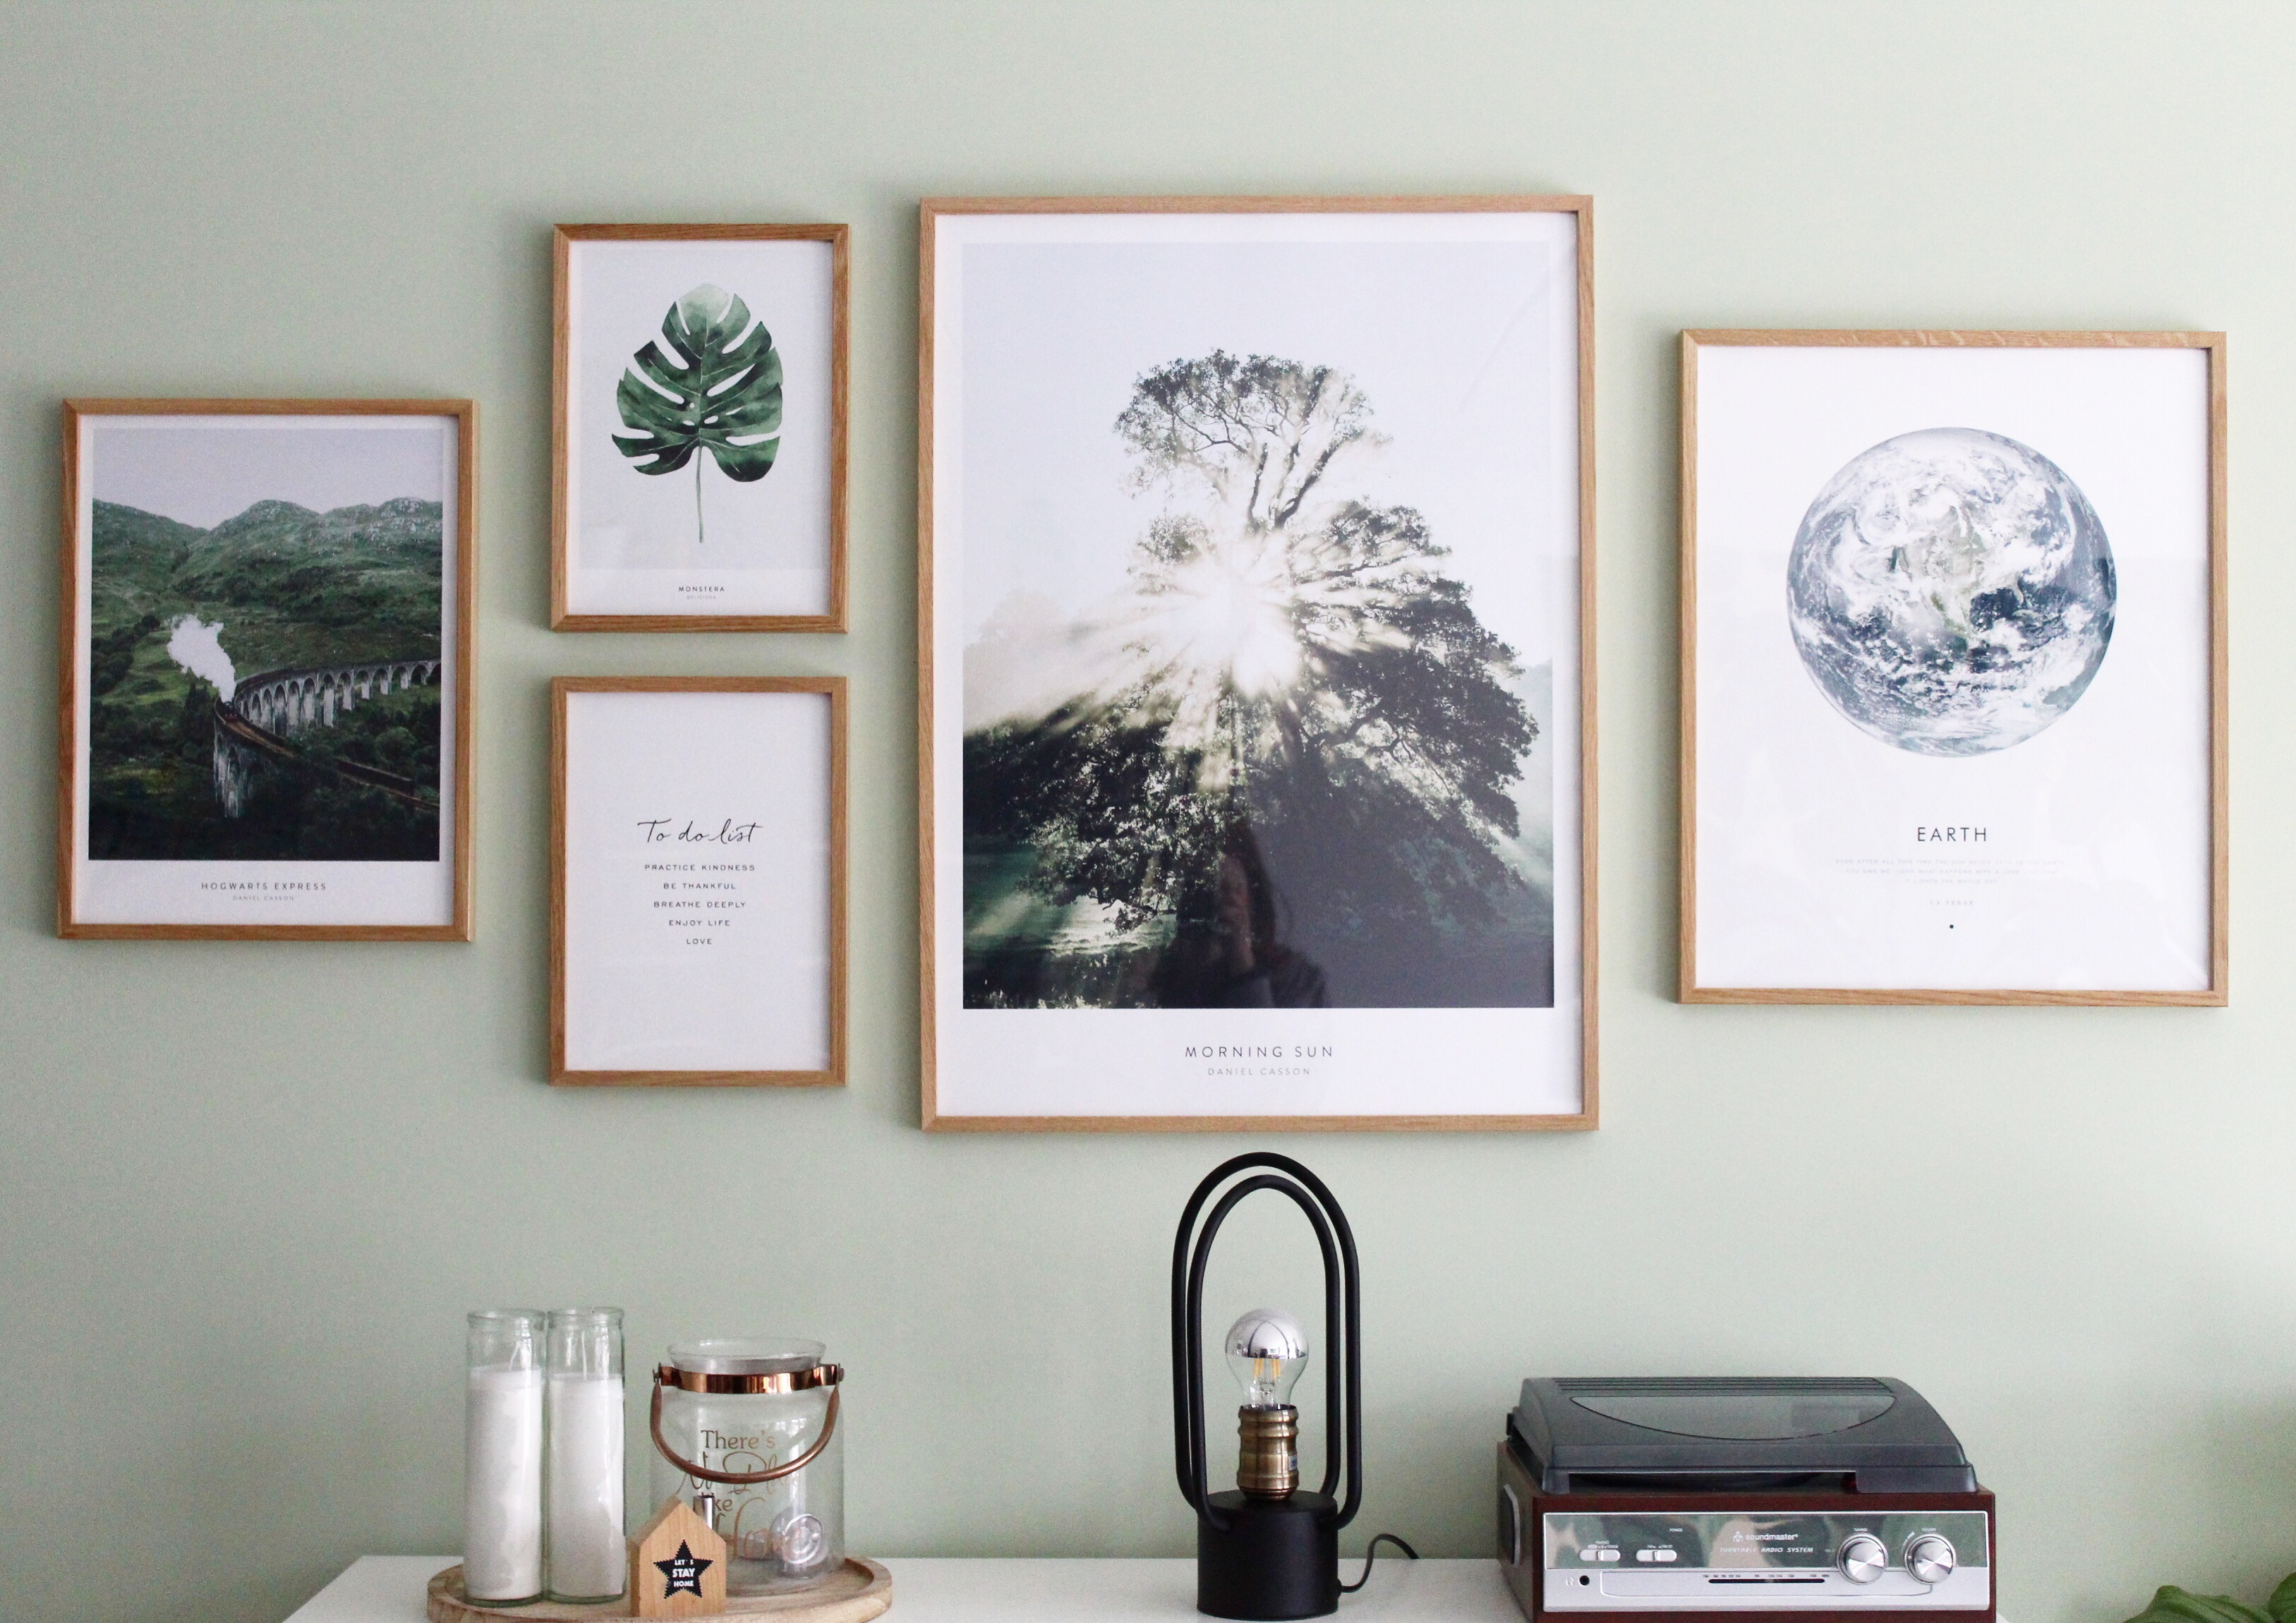 interieur posters poster posterstore interieur huis wonen lifestyle mama mamablog mamablogger blog blogger shoppen shop laviedemama.nl